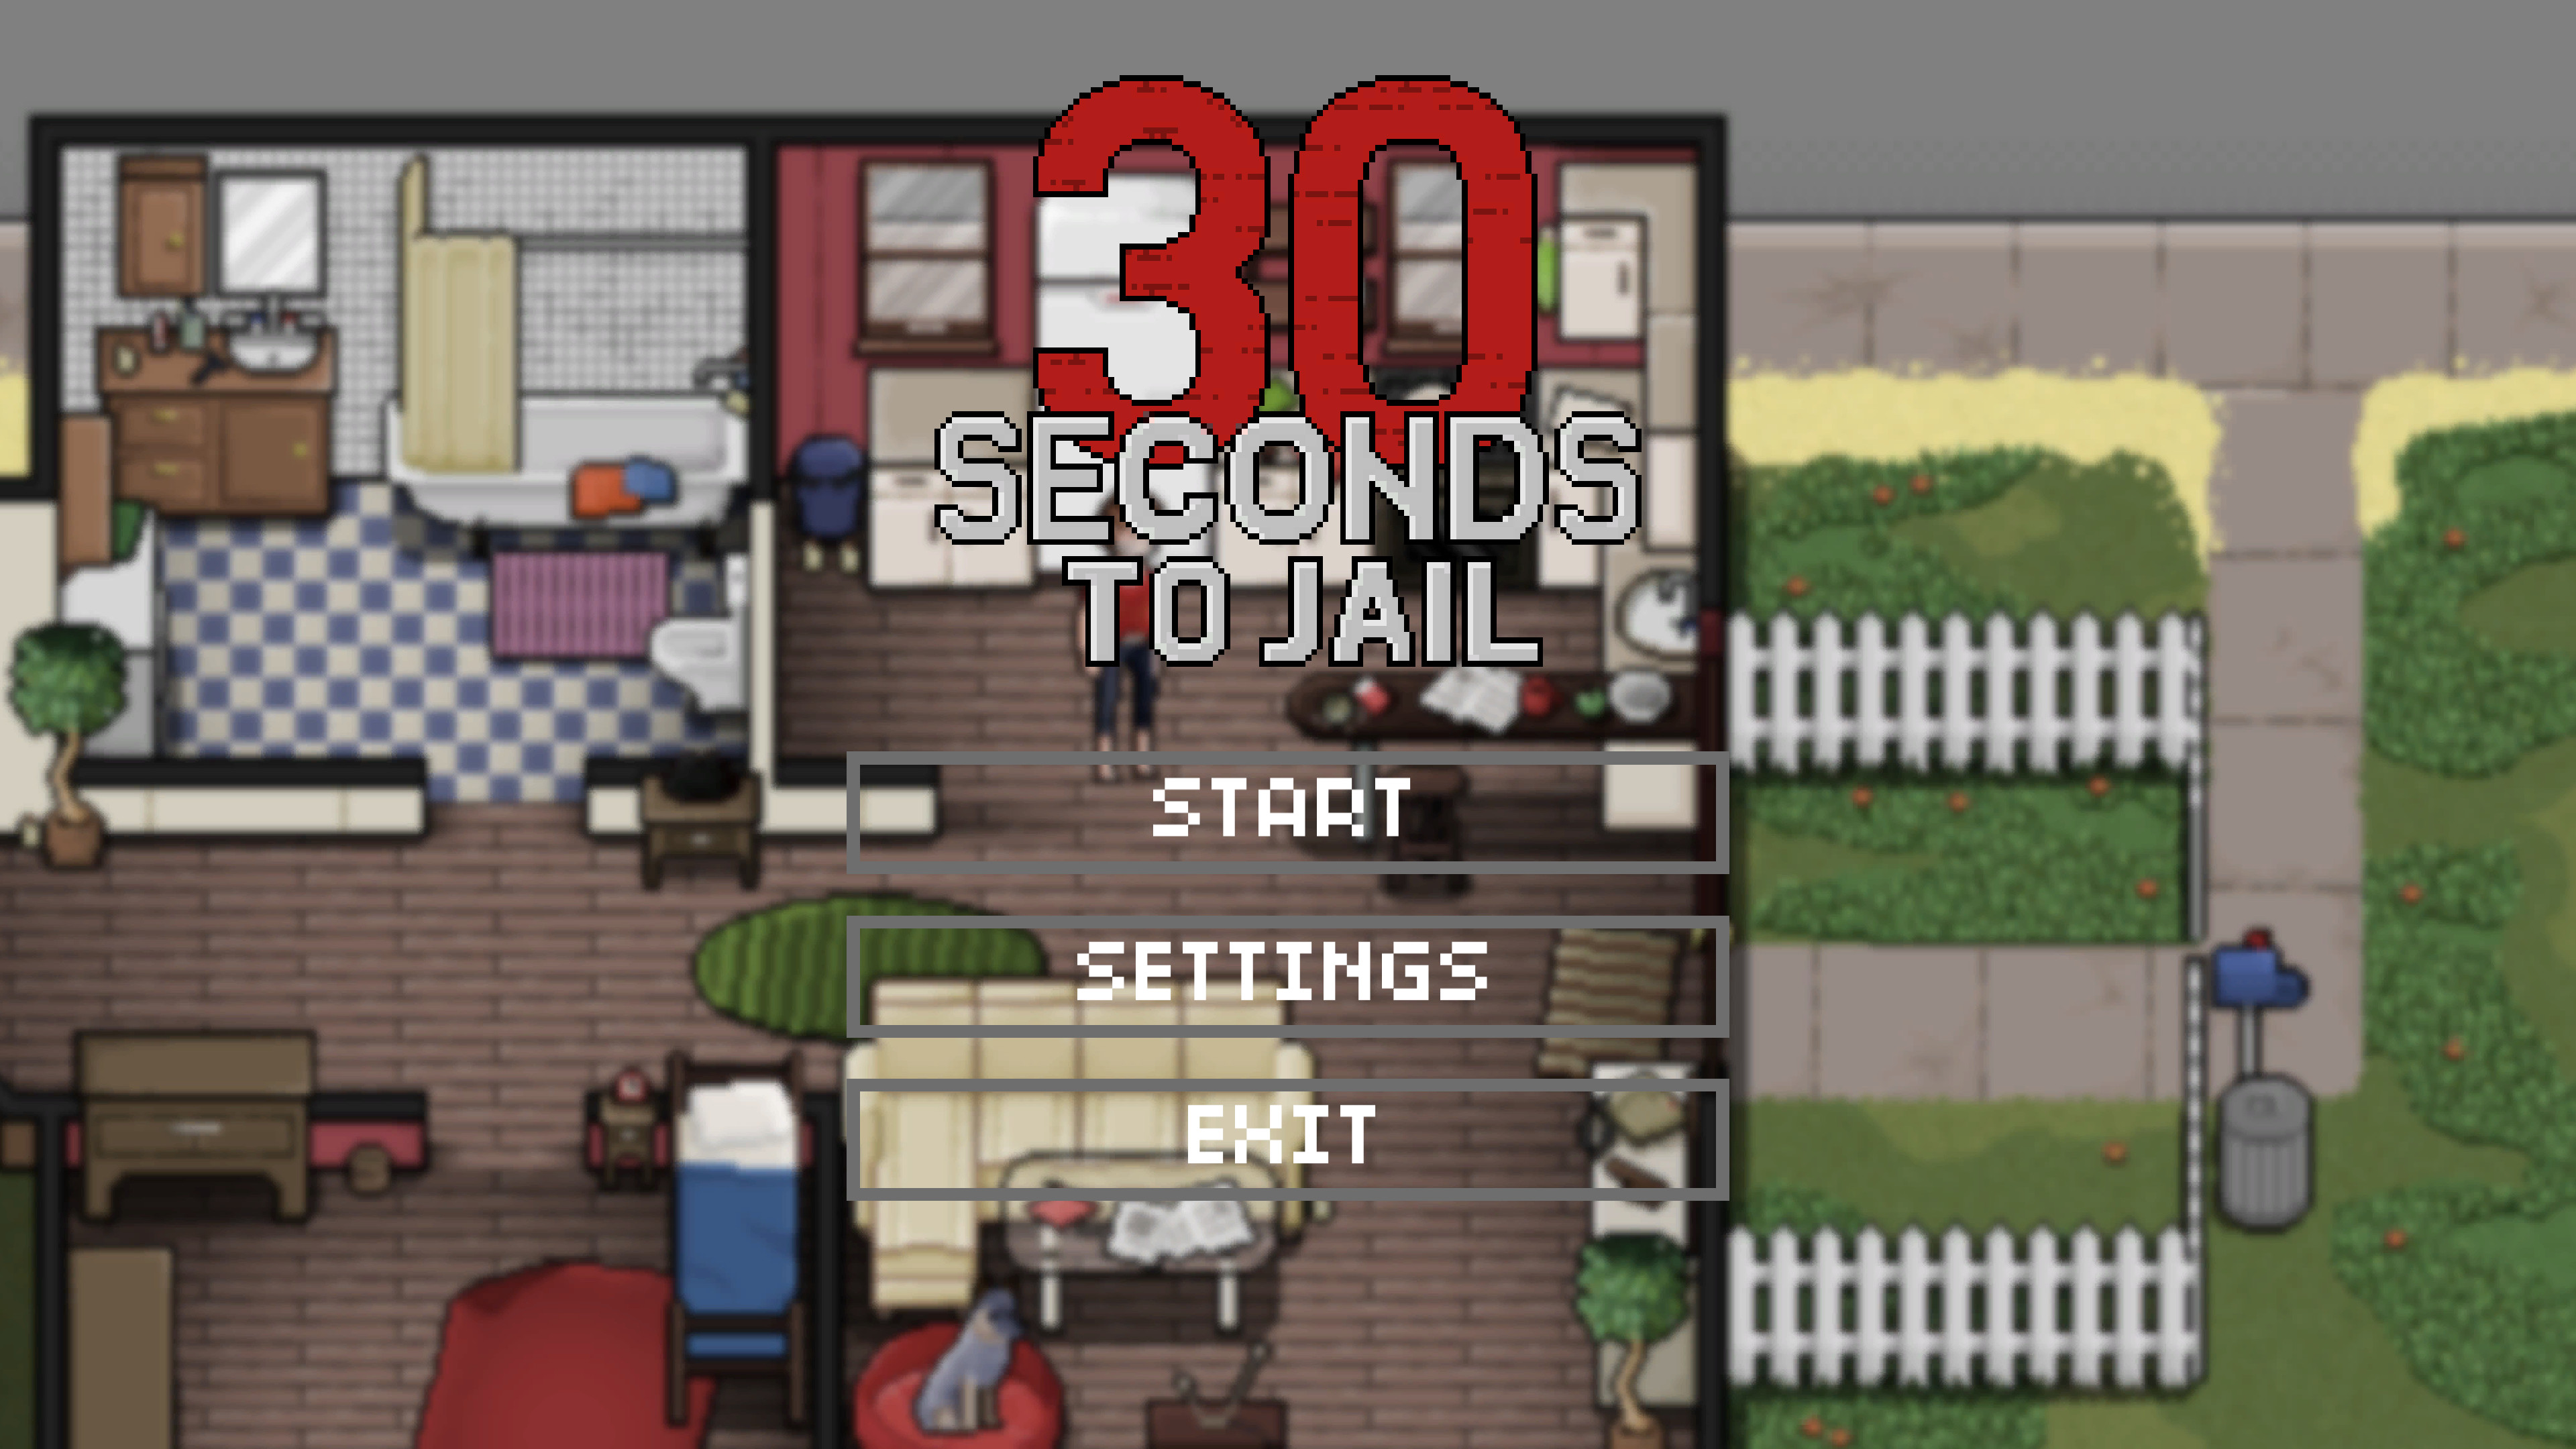 30 Seconds To Jail Game